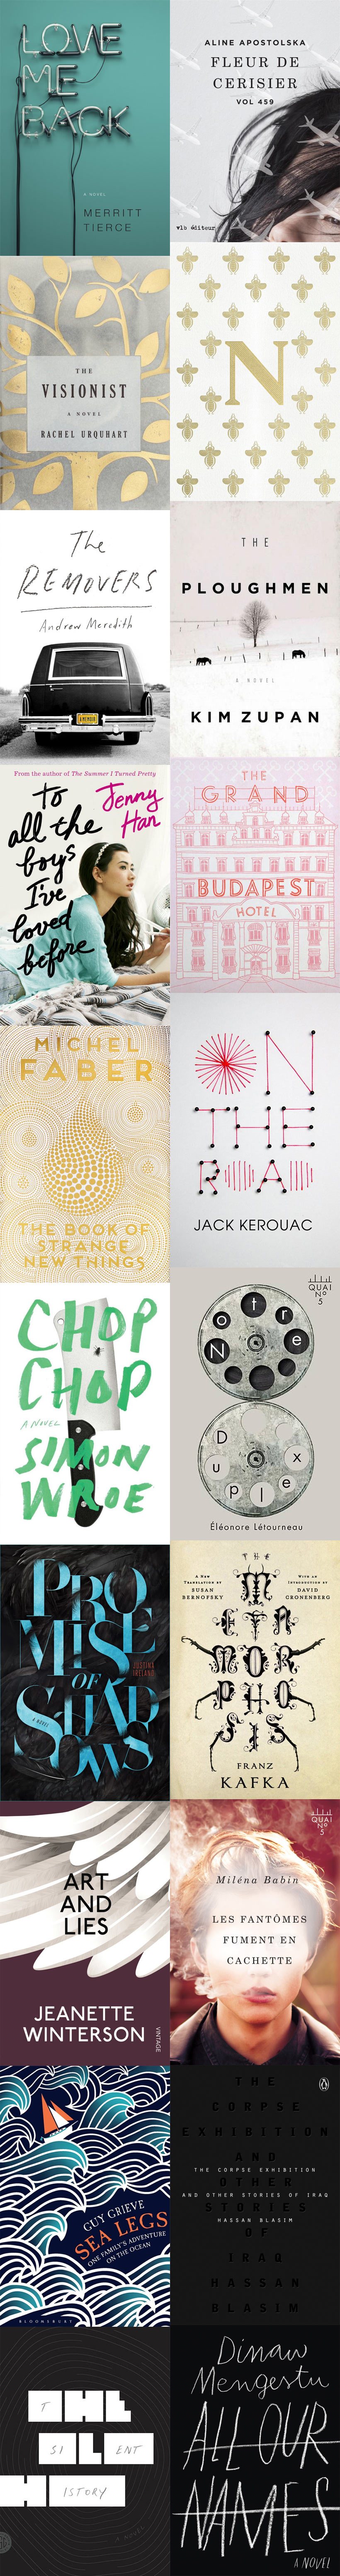 Book_Covers_2014